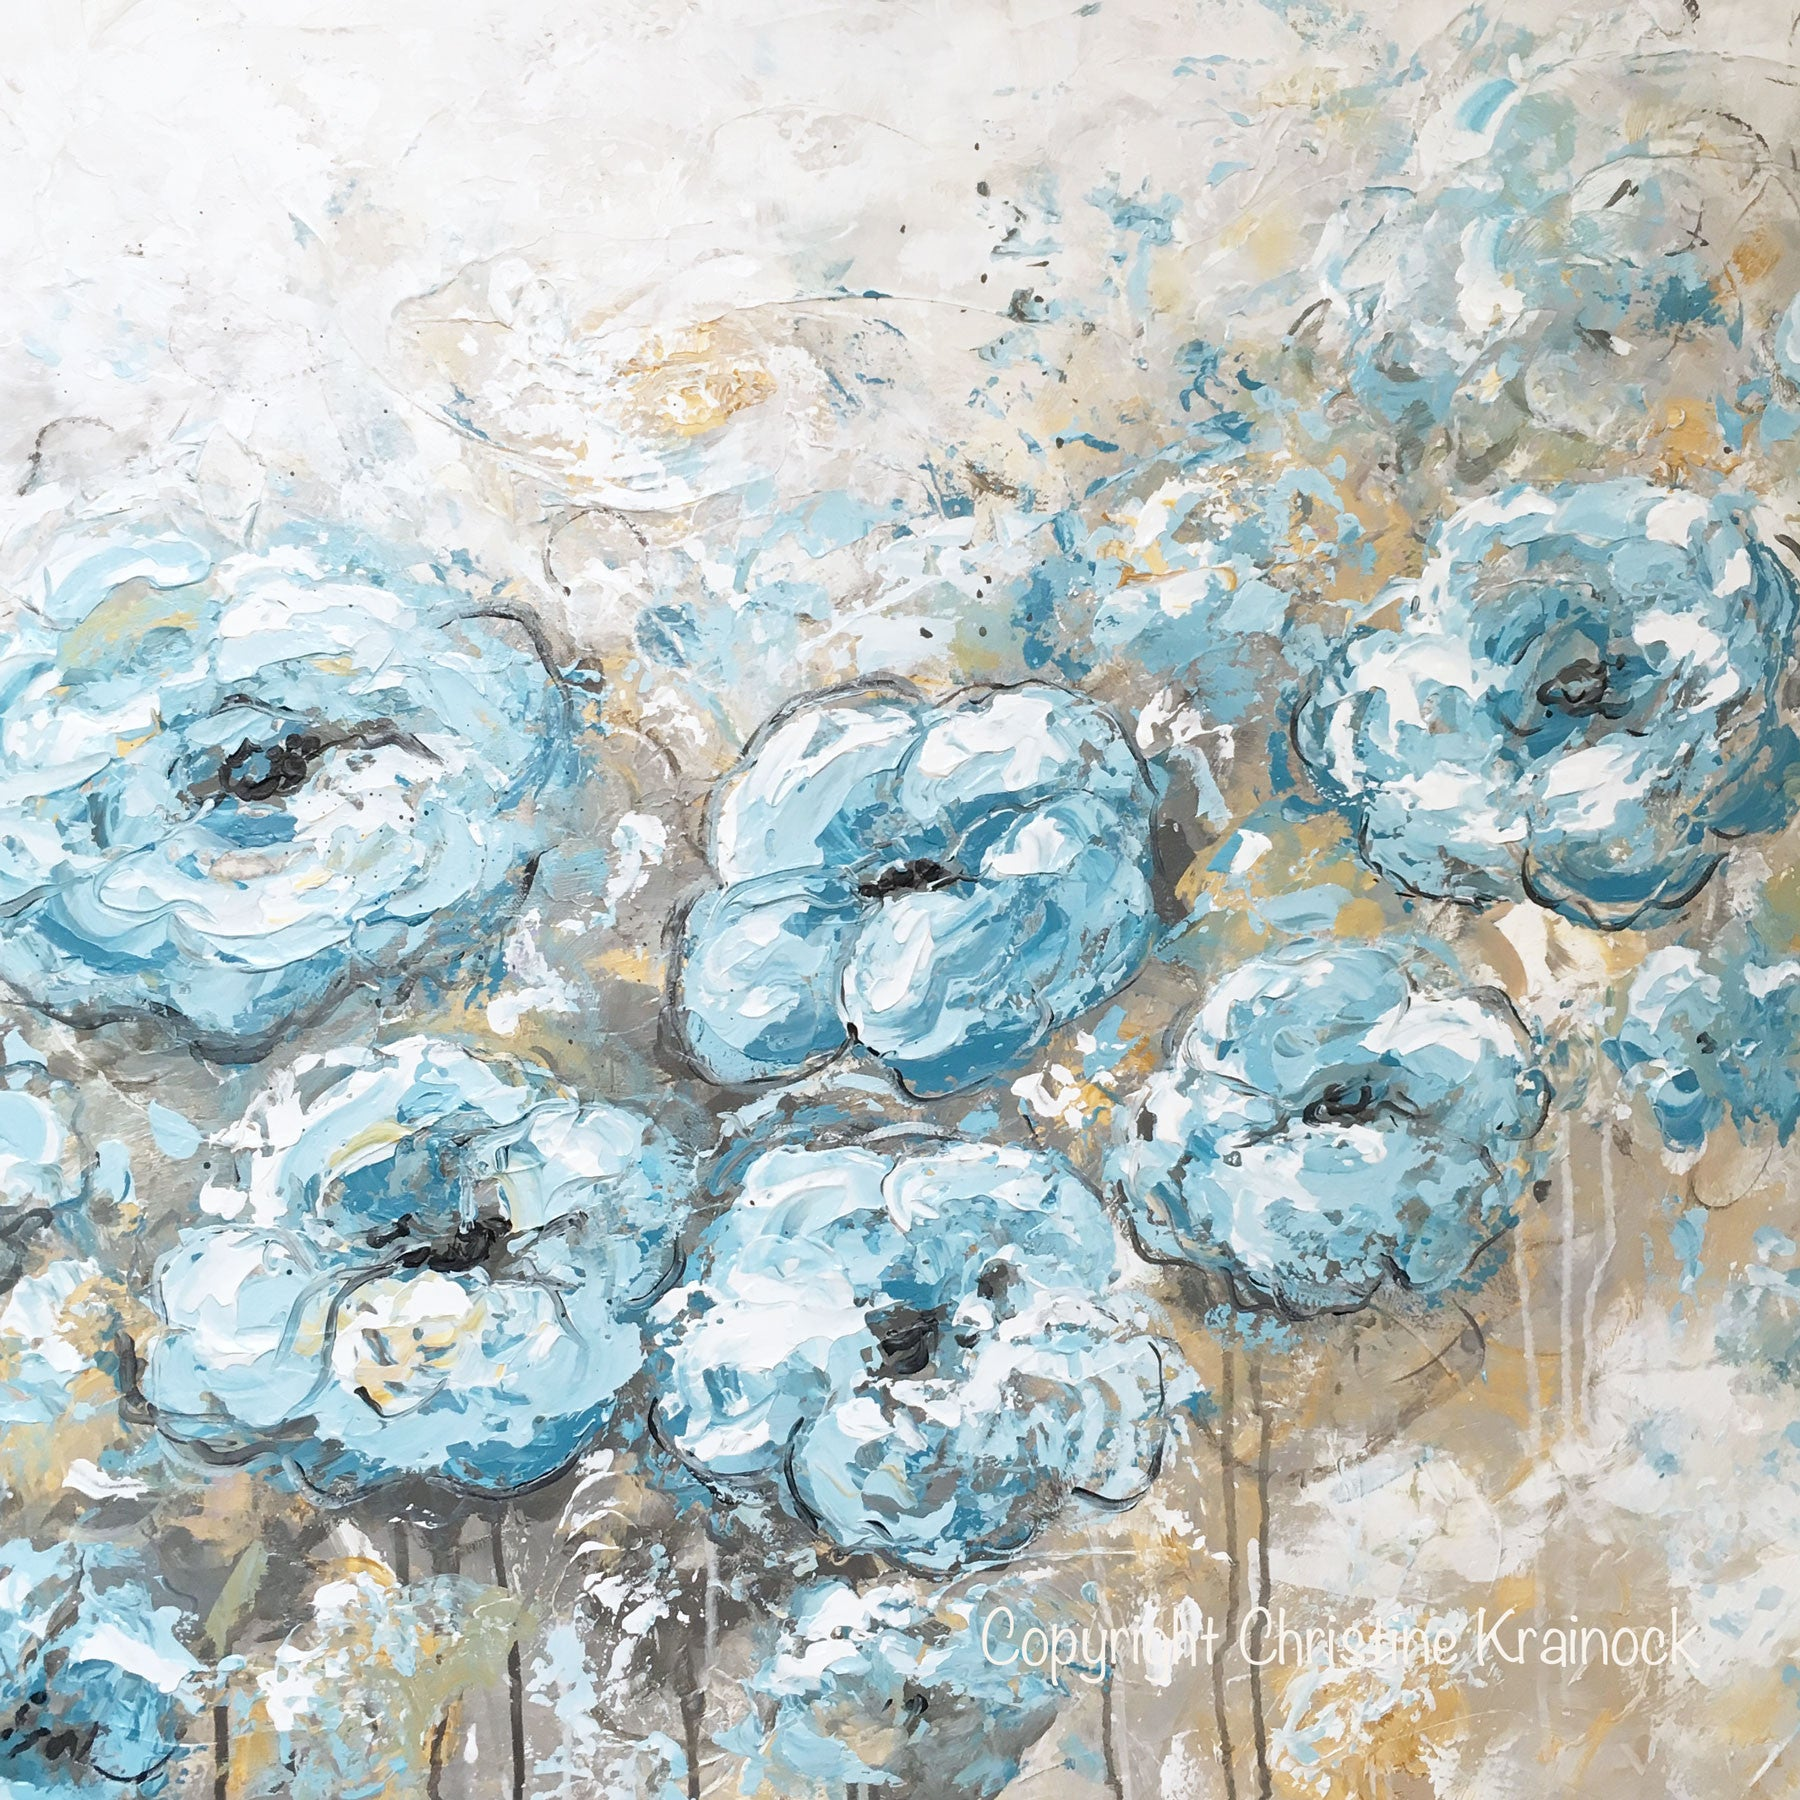 Abstract floral paintings abstract floral art abstract floral print abstract floral wall art abstract flower print abstract flower printable